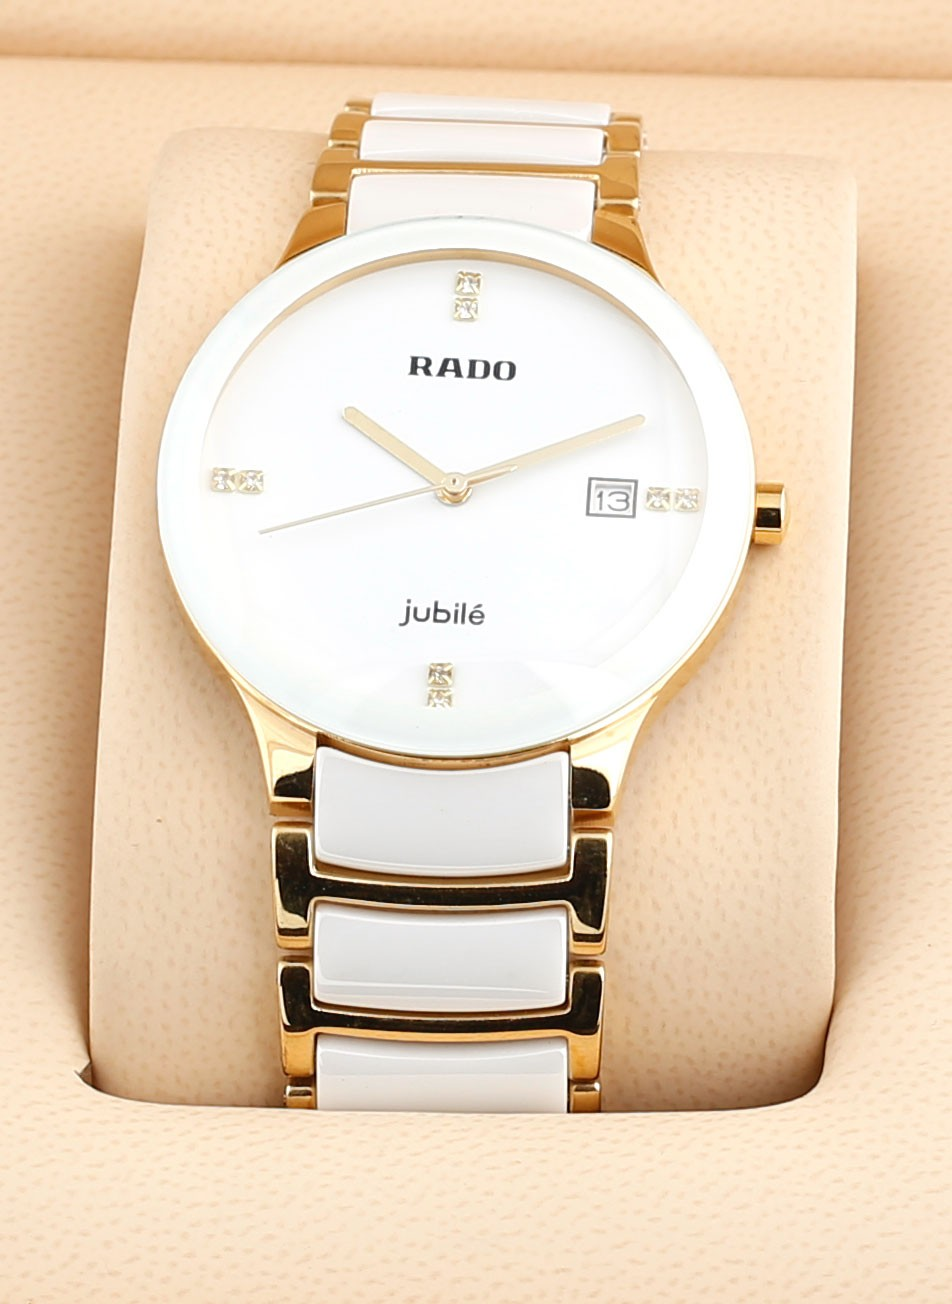 Rado centrix jubile white